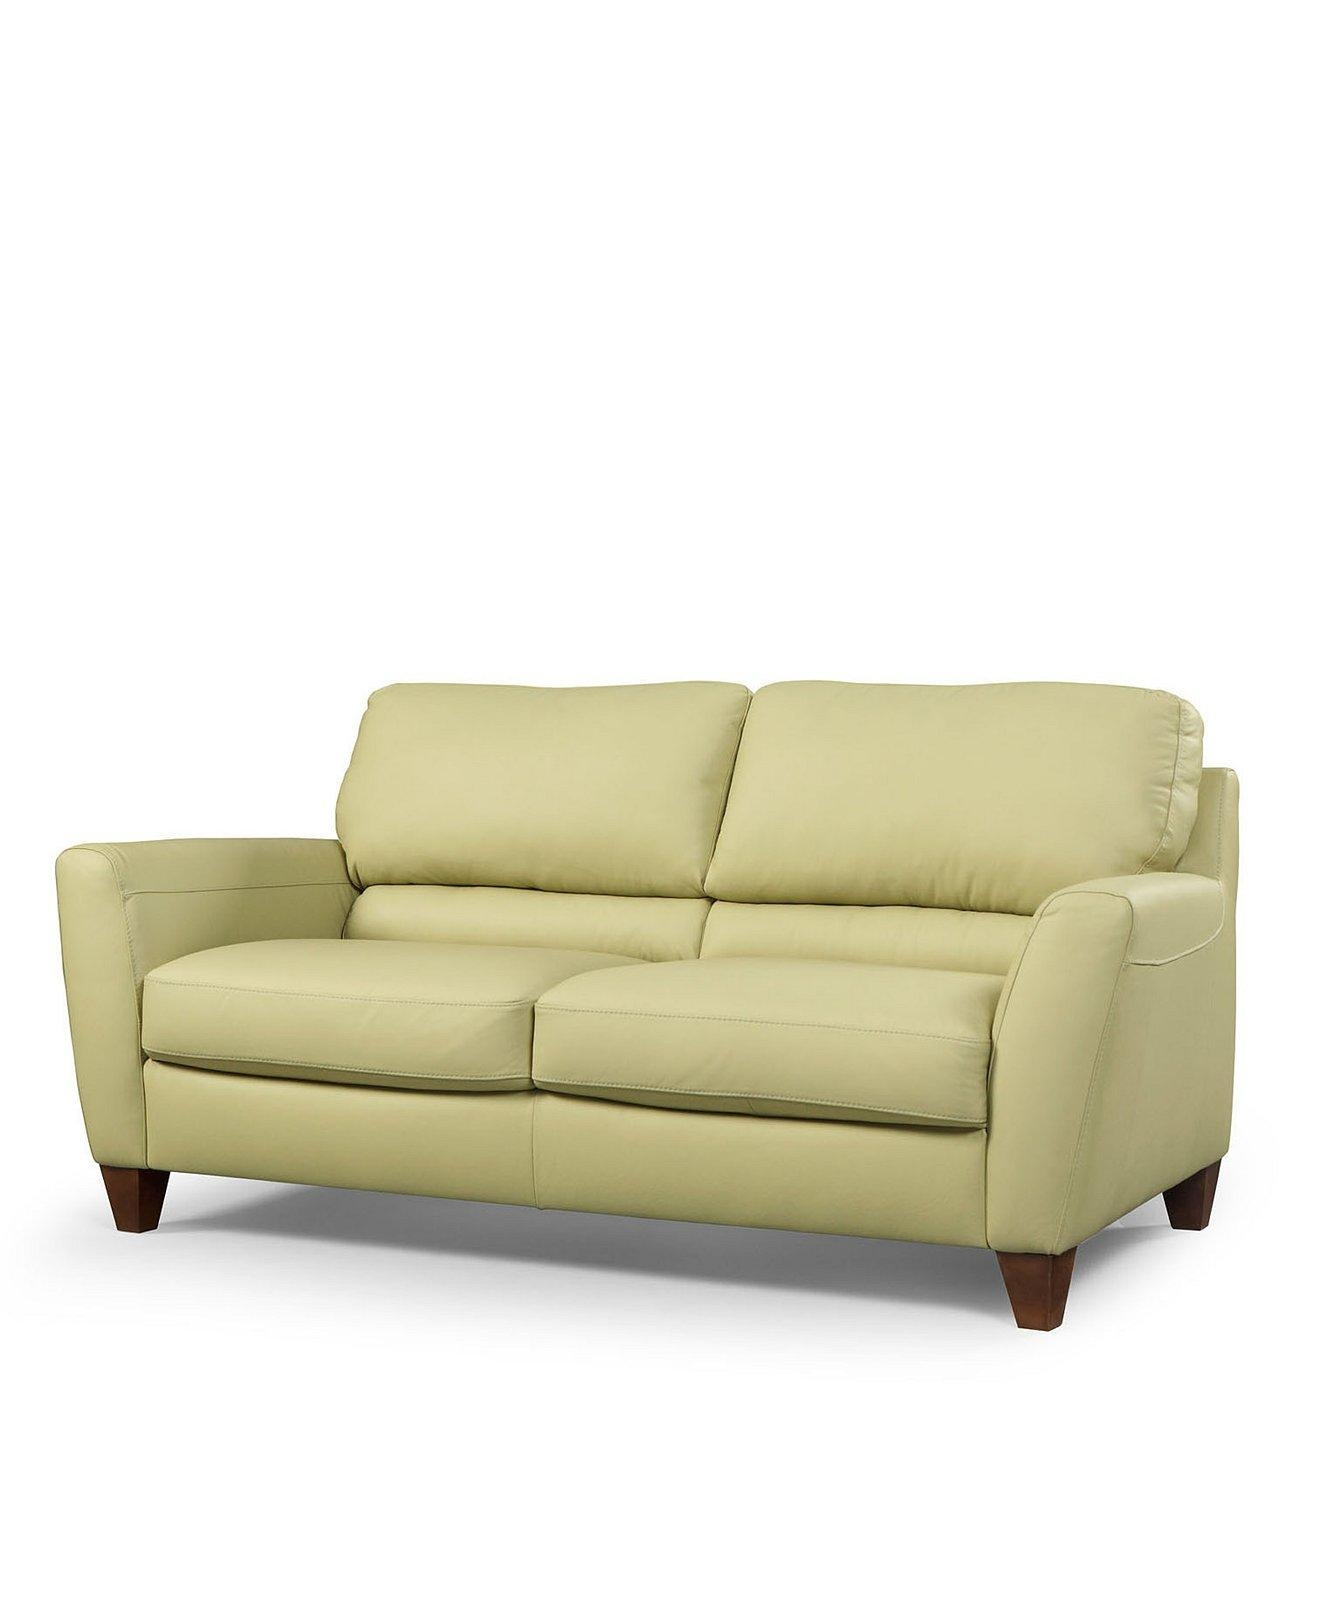 macys sofa bed hancock and moore prices 20 best collection of sofas ideas